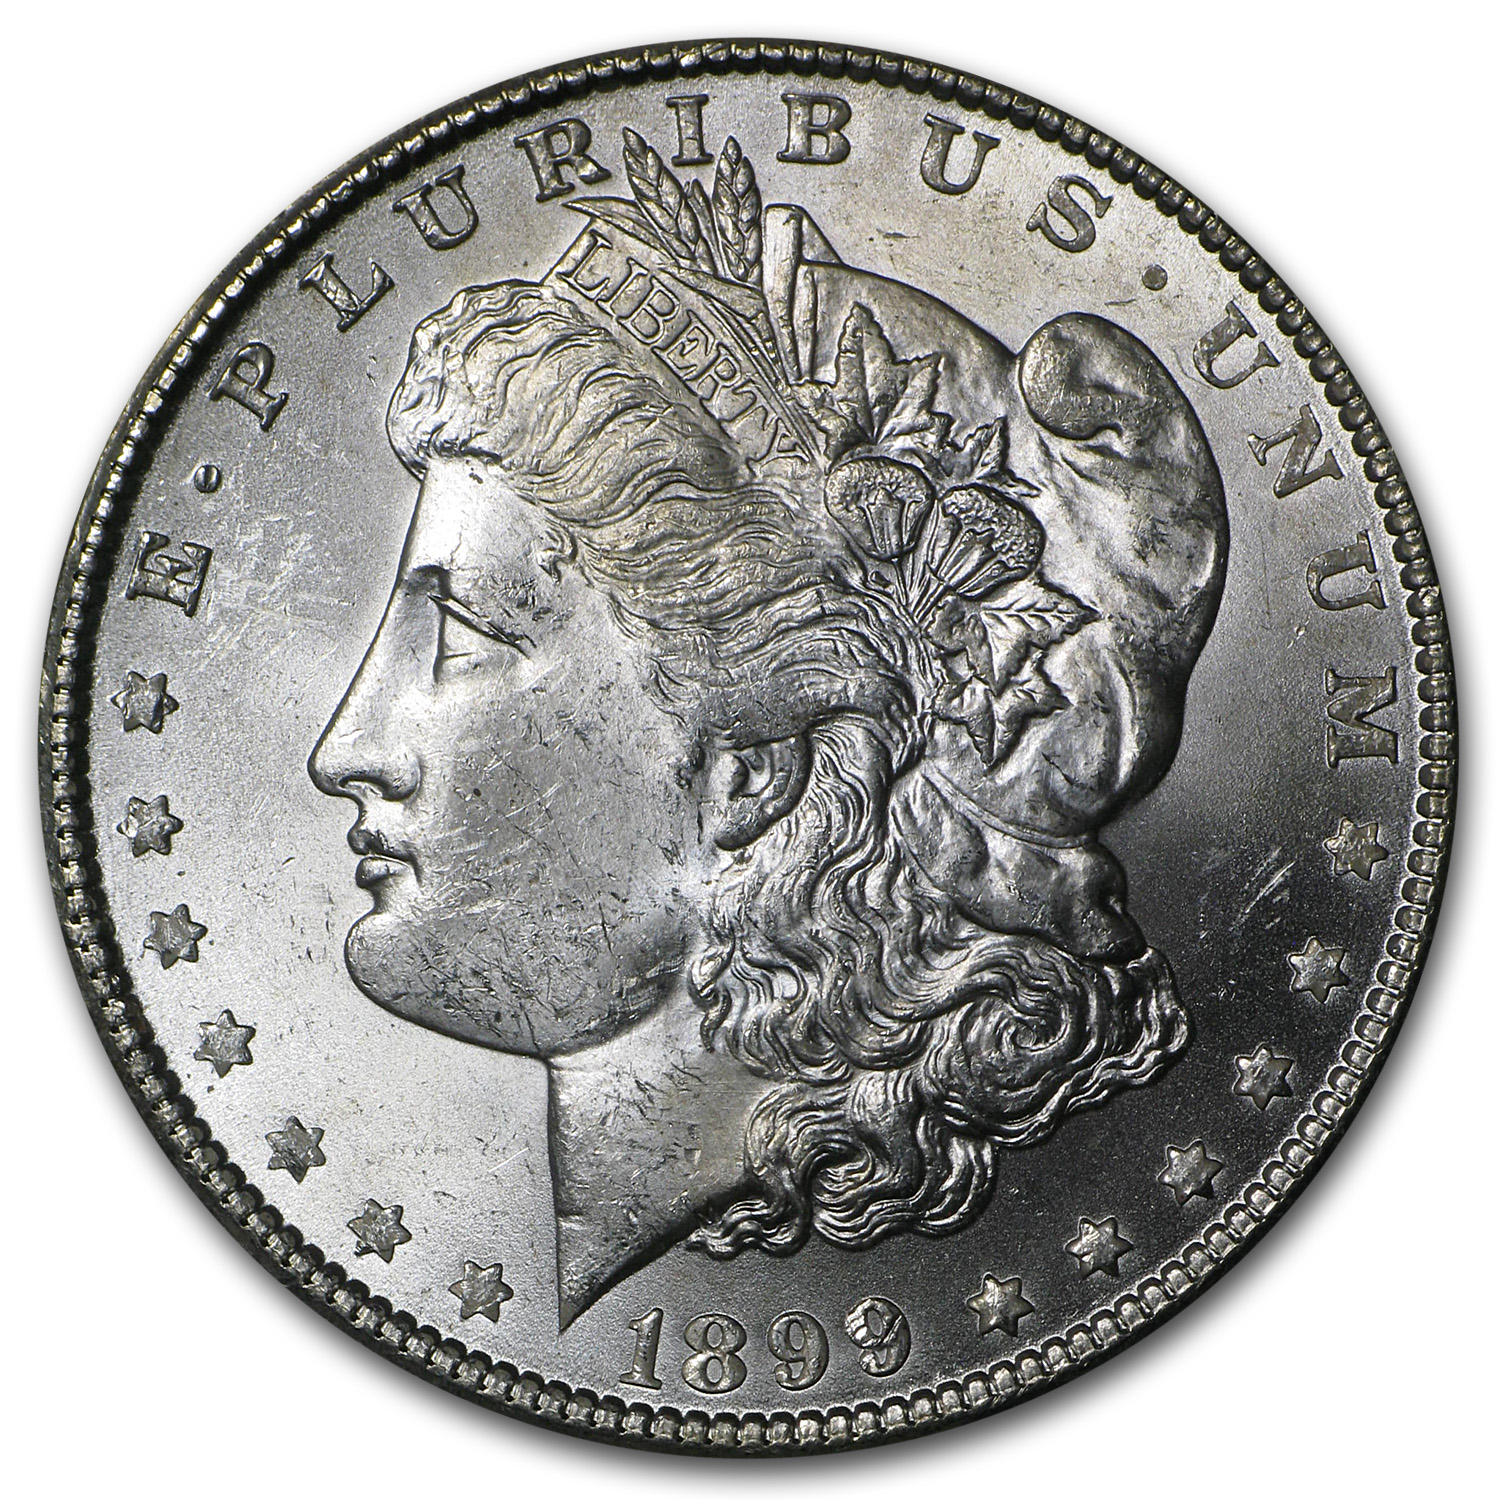 1899-O Morgan Dollar - Brilliant Uncirculated